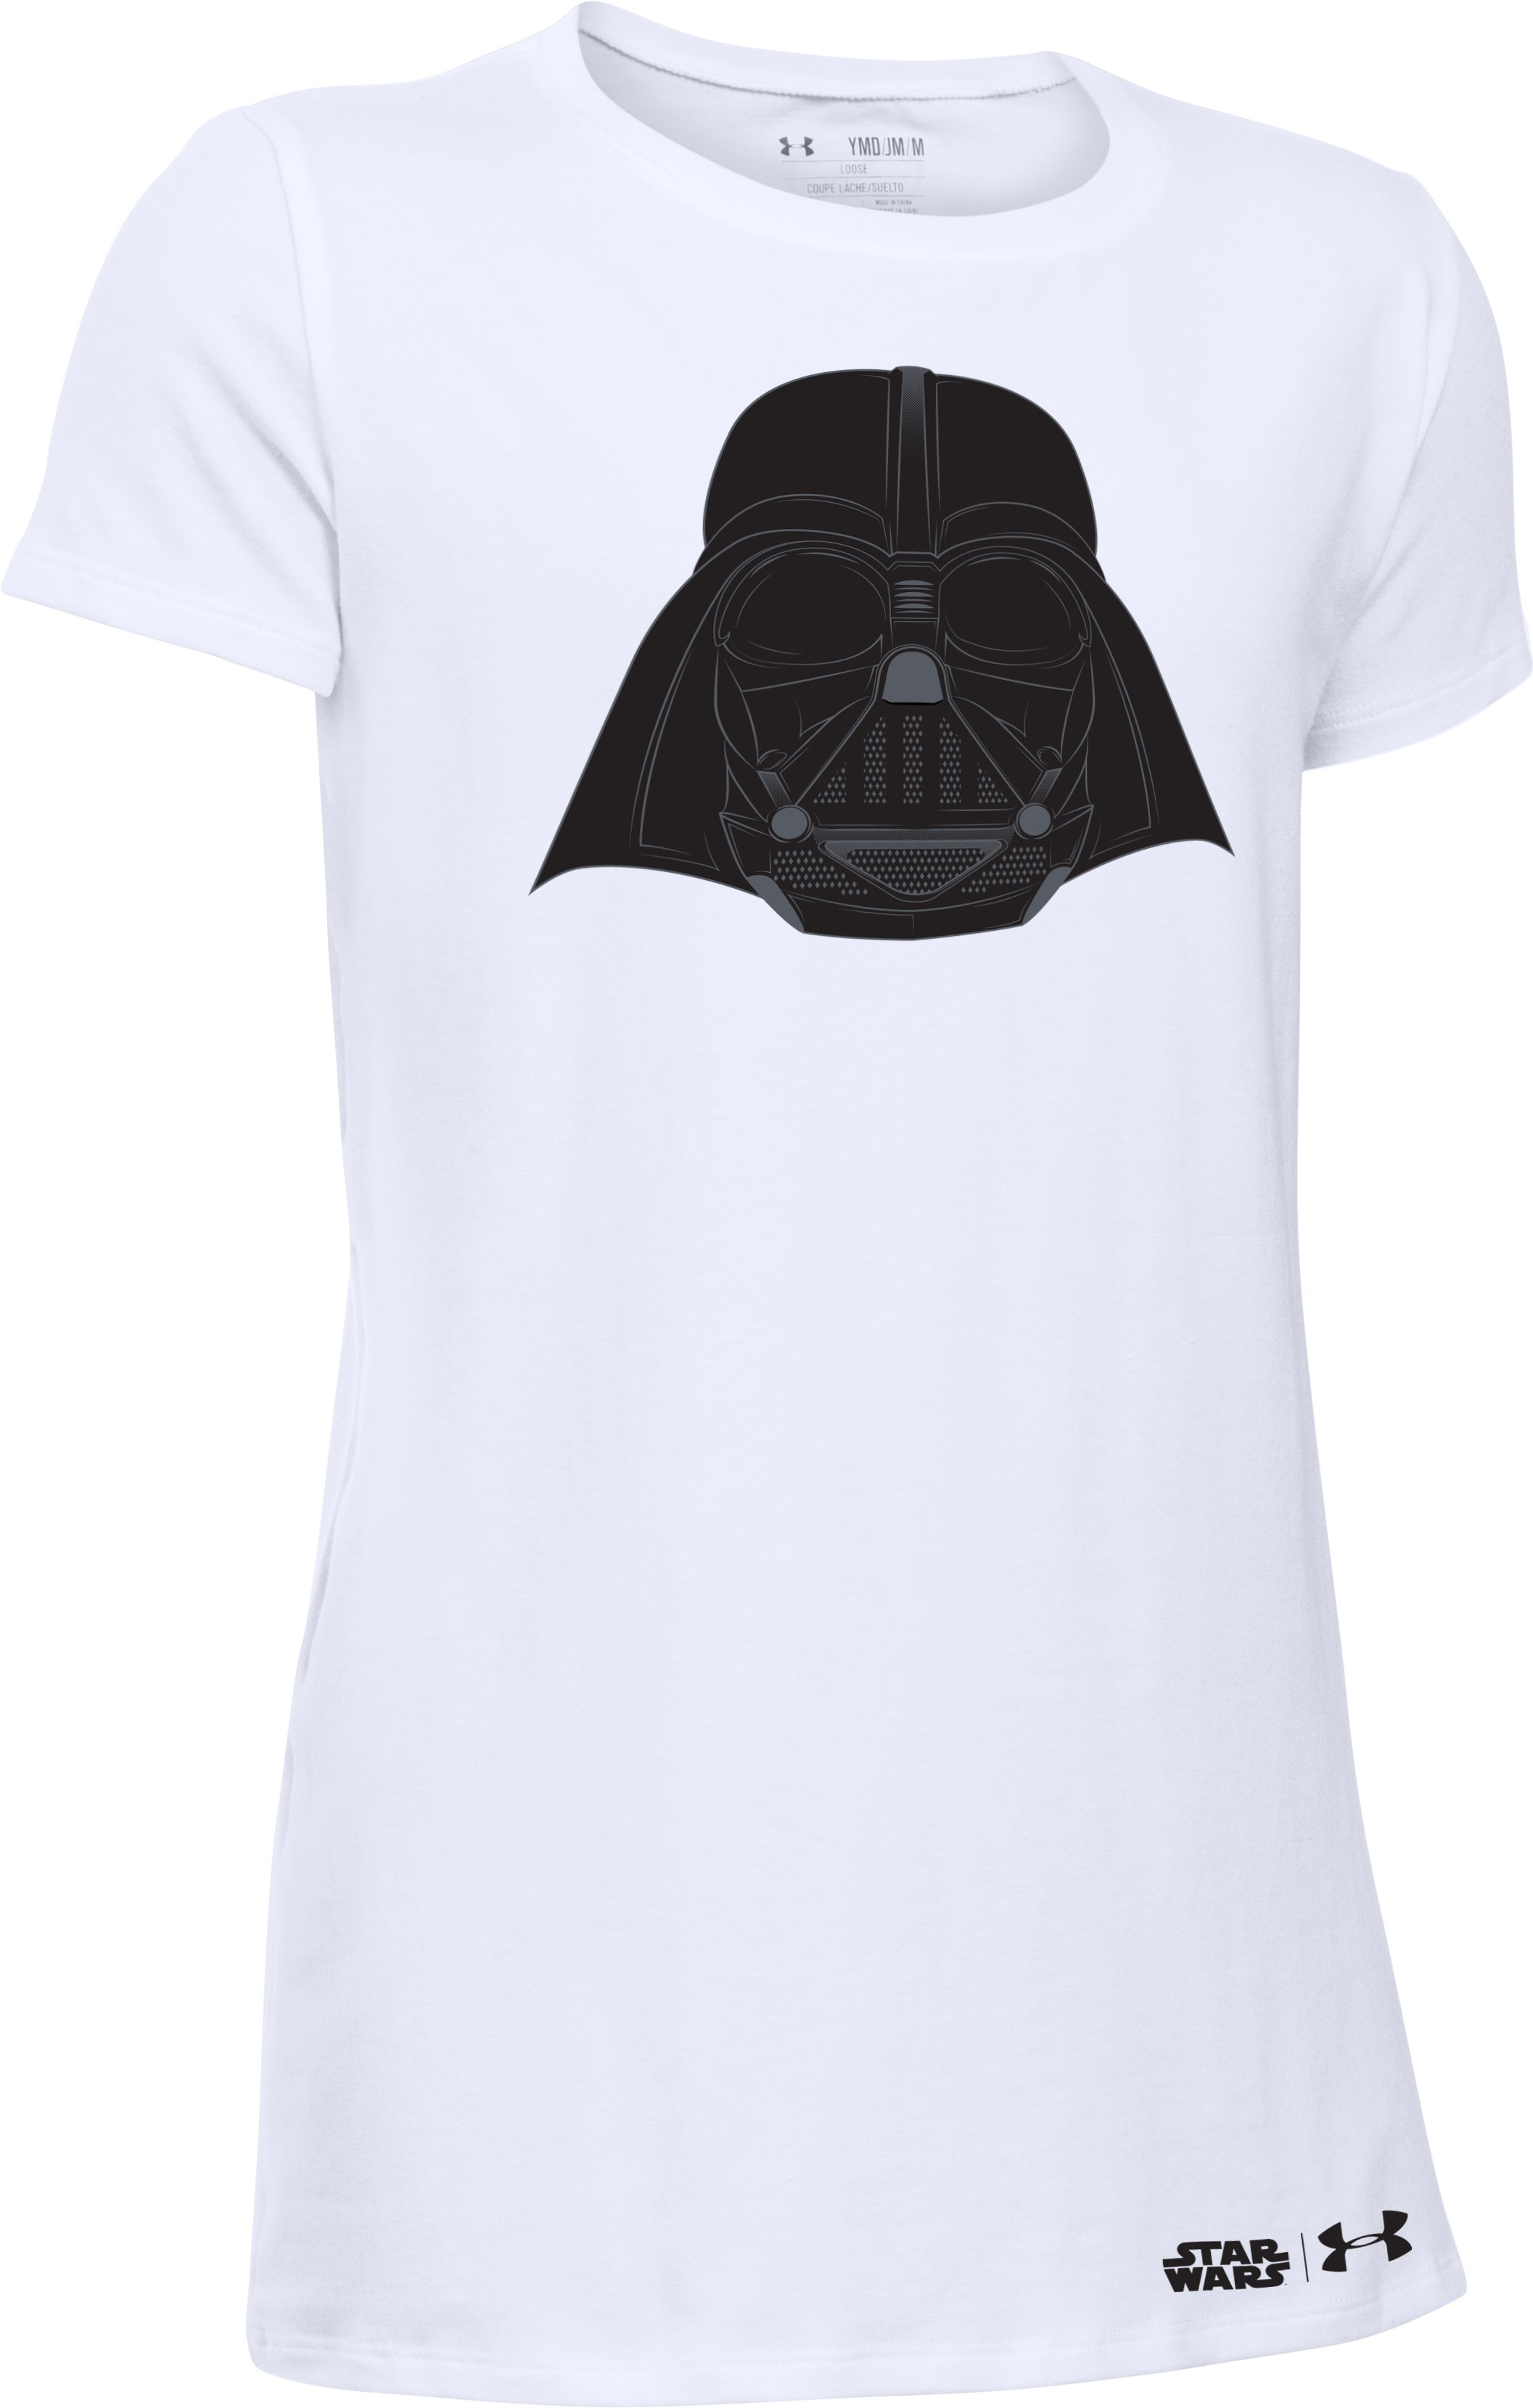 Girls' Star Wars Darth Vader Short Sleeve T-Shirt, White, undefined